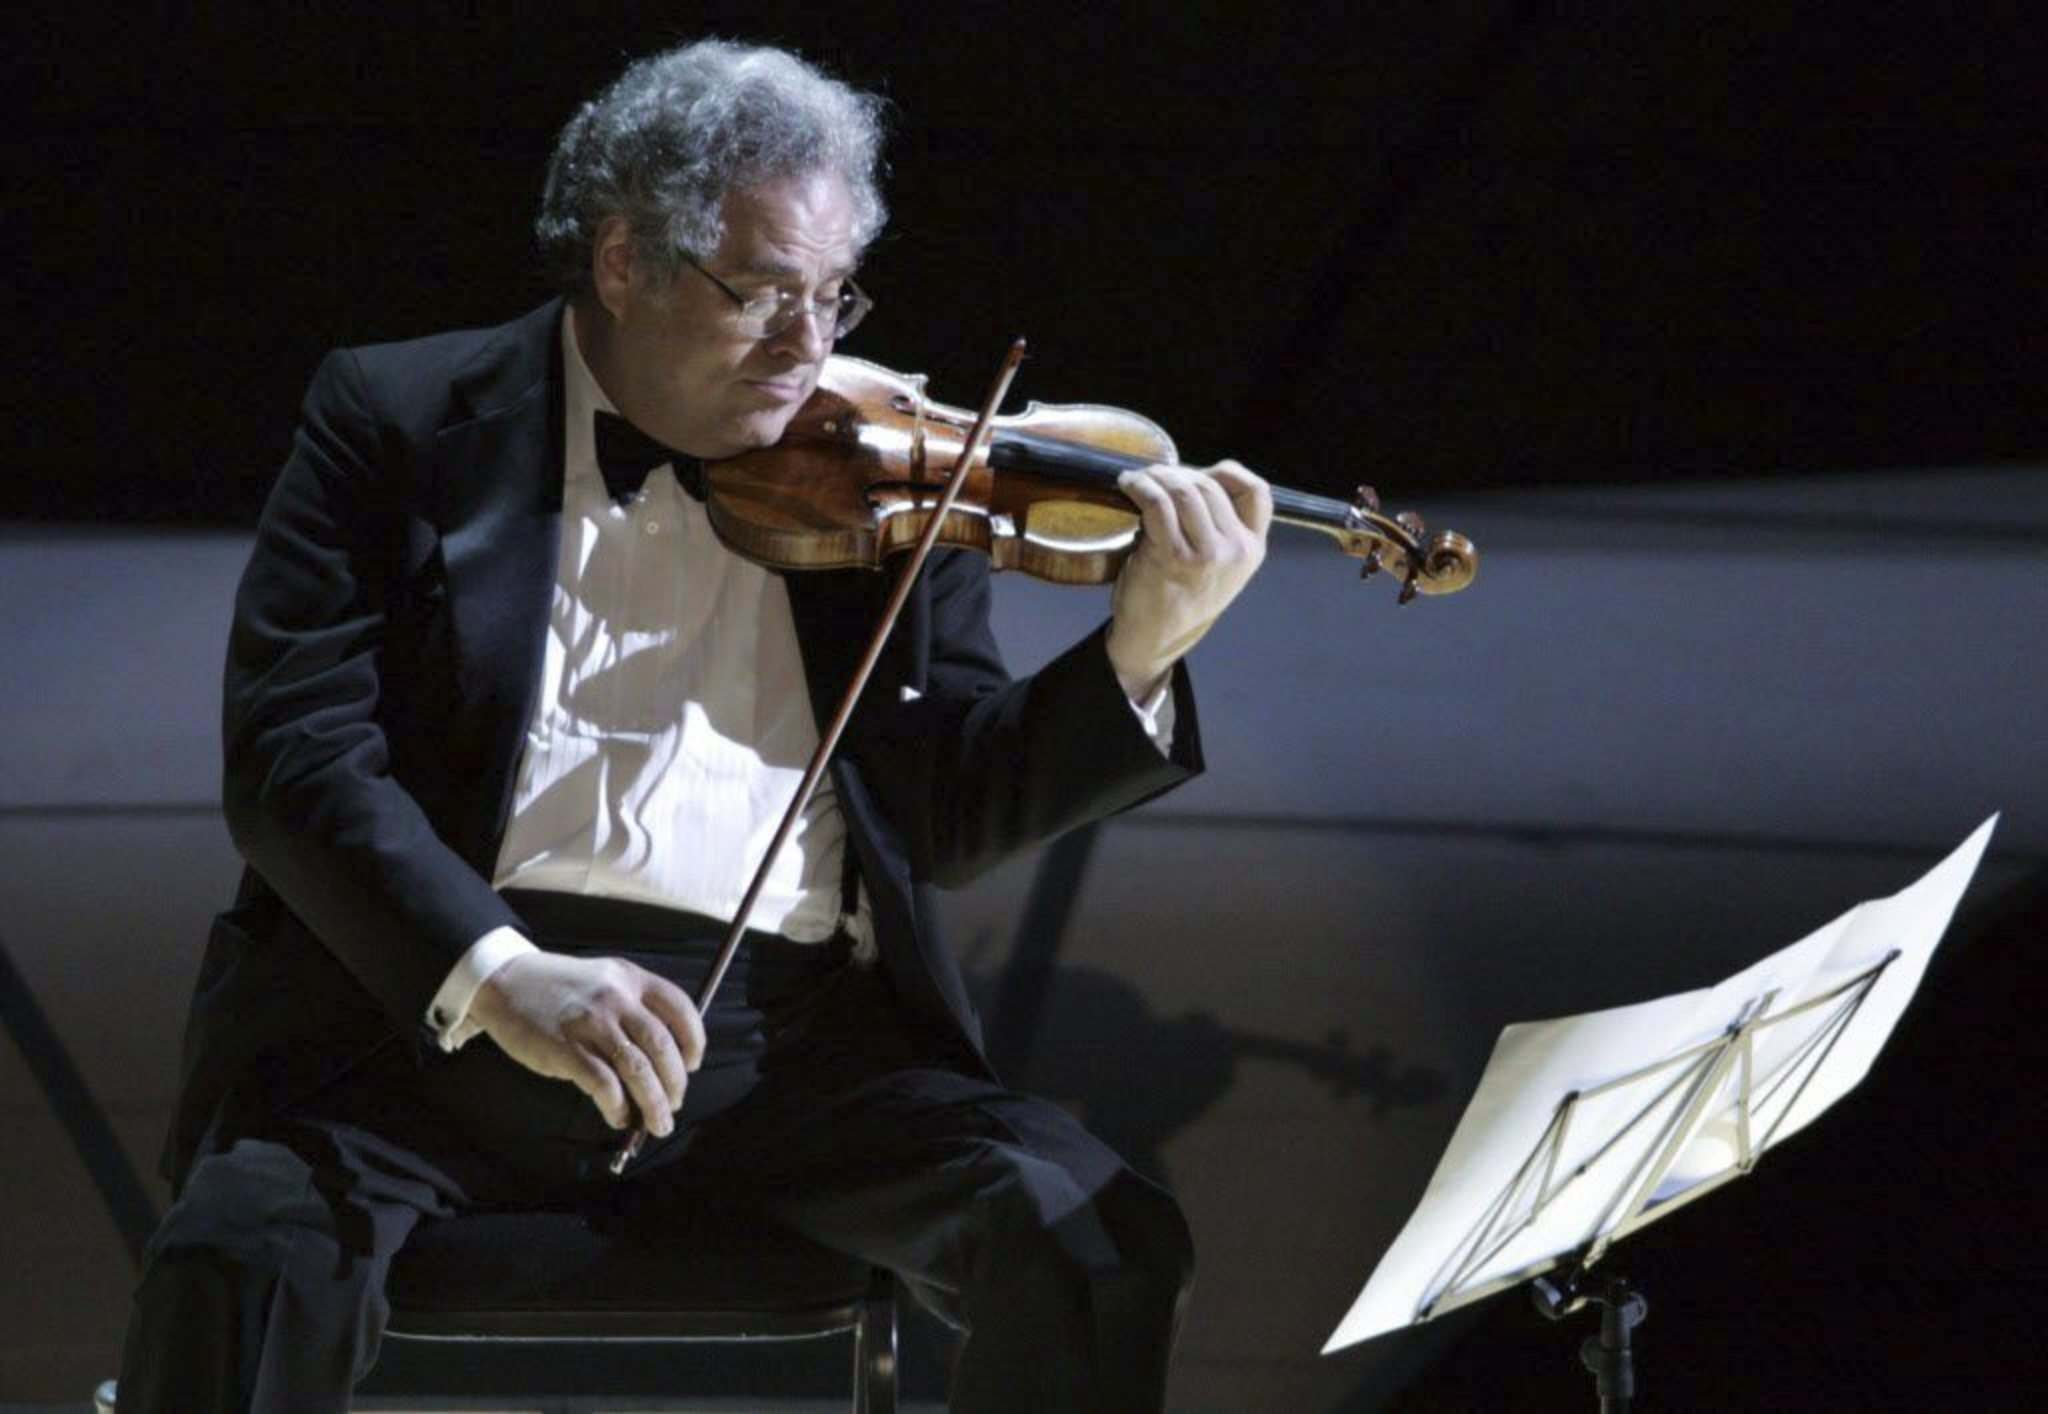 Mark J. Terrill / The Associated Press</p><p>A sold-out audience at the Centennial Concert Hall will ring in the WSO's 70th anniversary tonight and welcome violinist Itzhak Perlman, one of the most celebrated figures in classical music.</p></p>